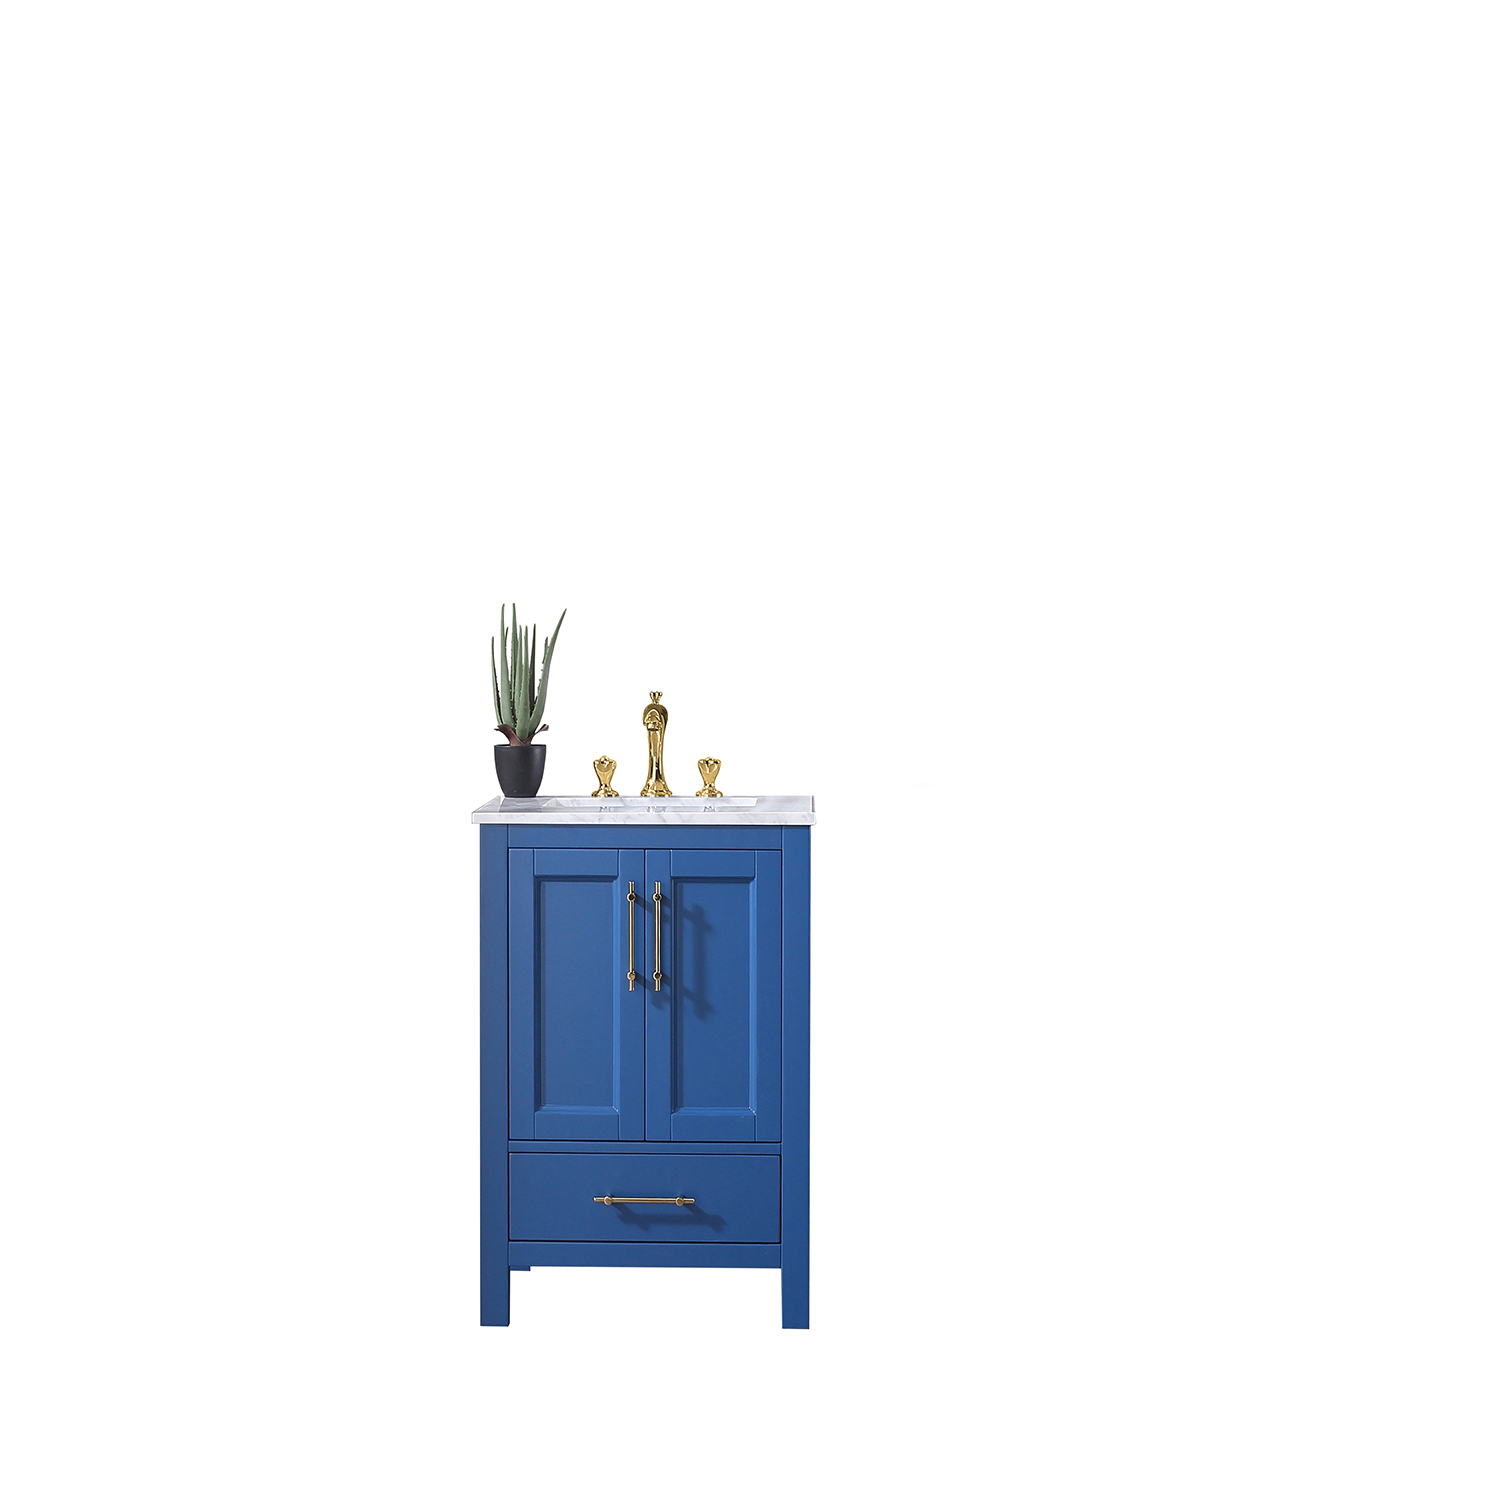 EVVN413 24BLU A Main - Eviva Navy 24 inch Deep Blue Bathroom Vanity with White Carrera Counter-top and White Undermount Porcelain Sink